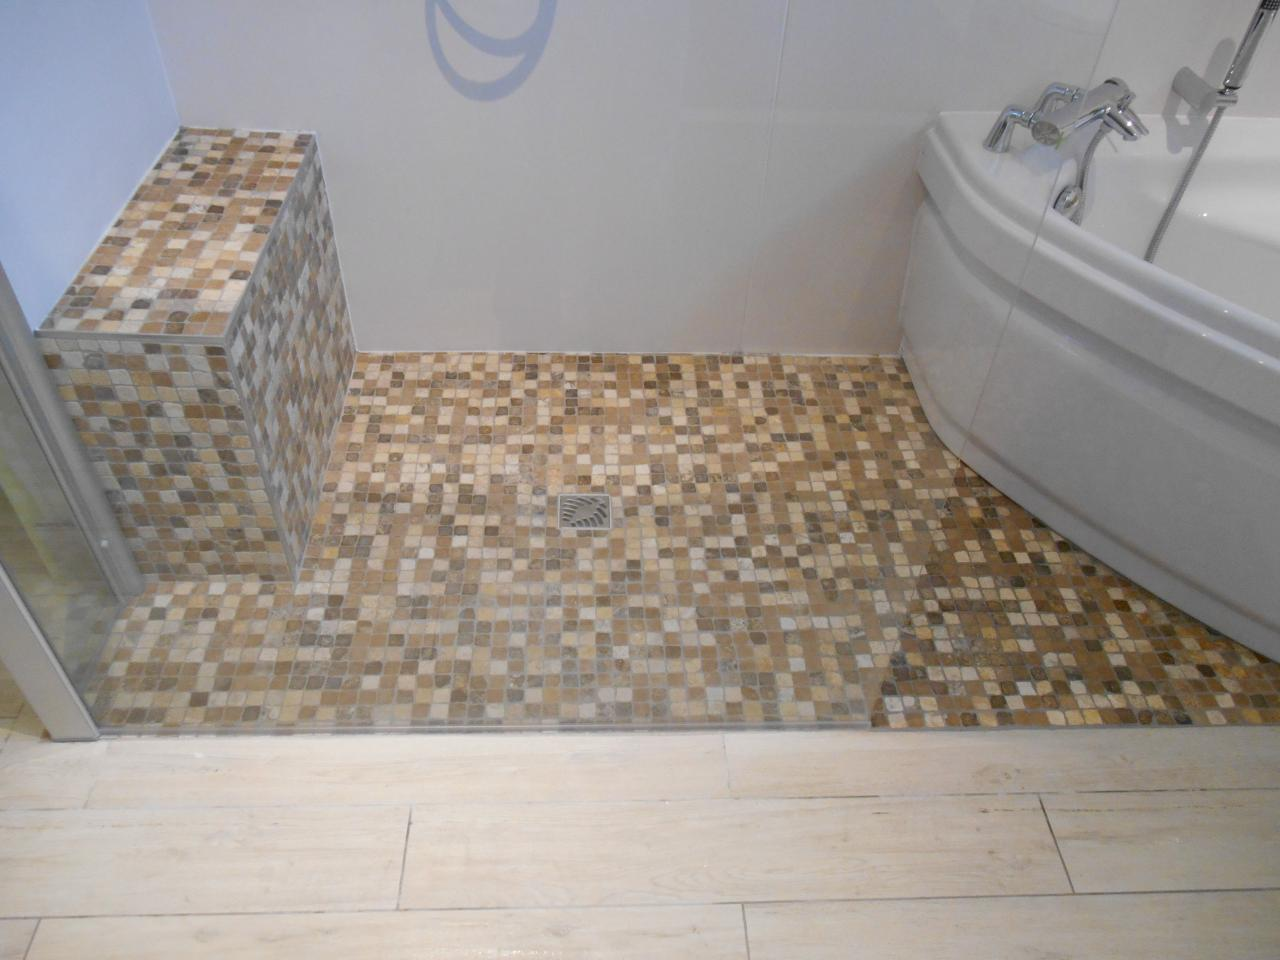 Carrelage mosaique douche italienne mosaique photo am for Carrelage pour mosaique